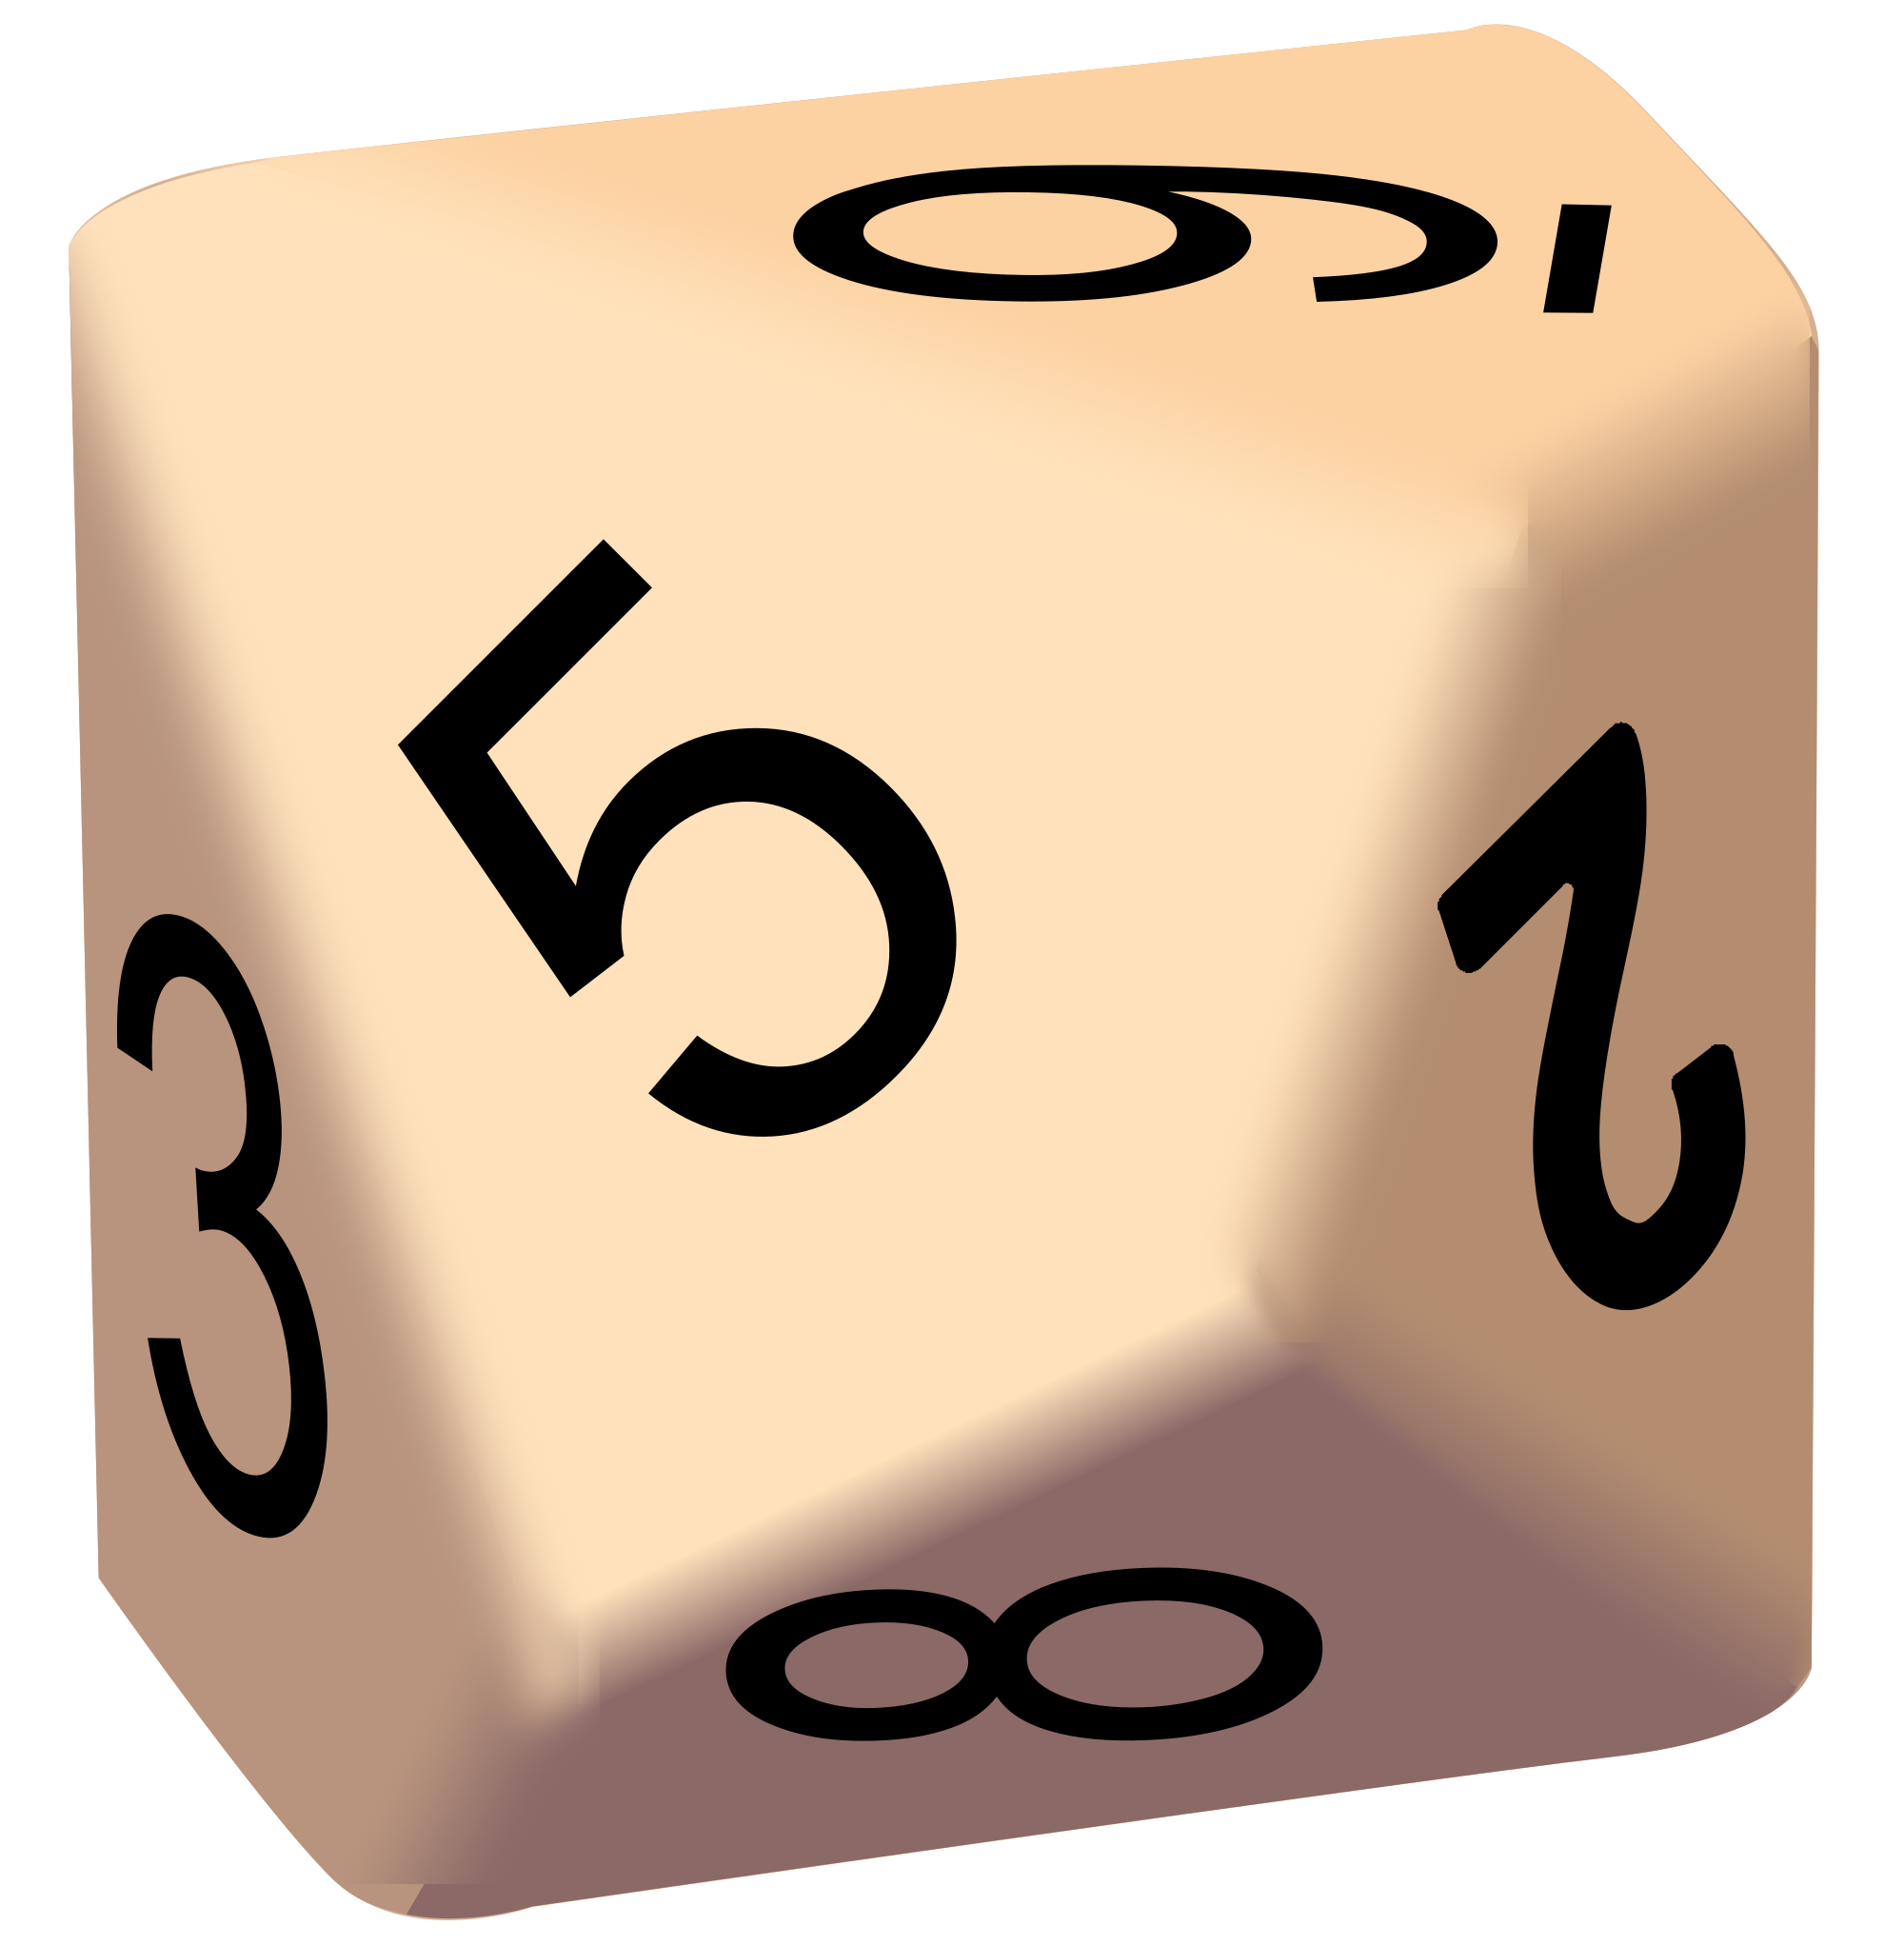 10 Sided Dice Clipart.